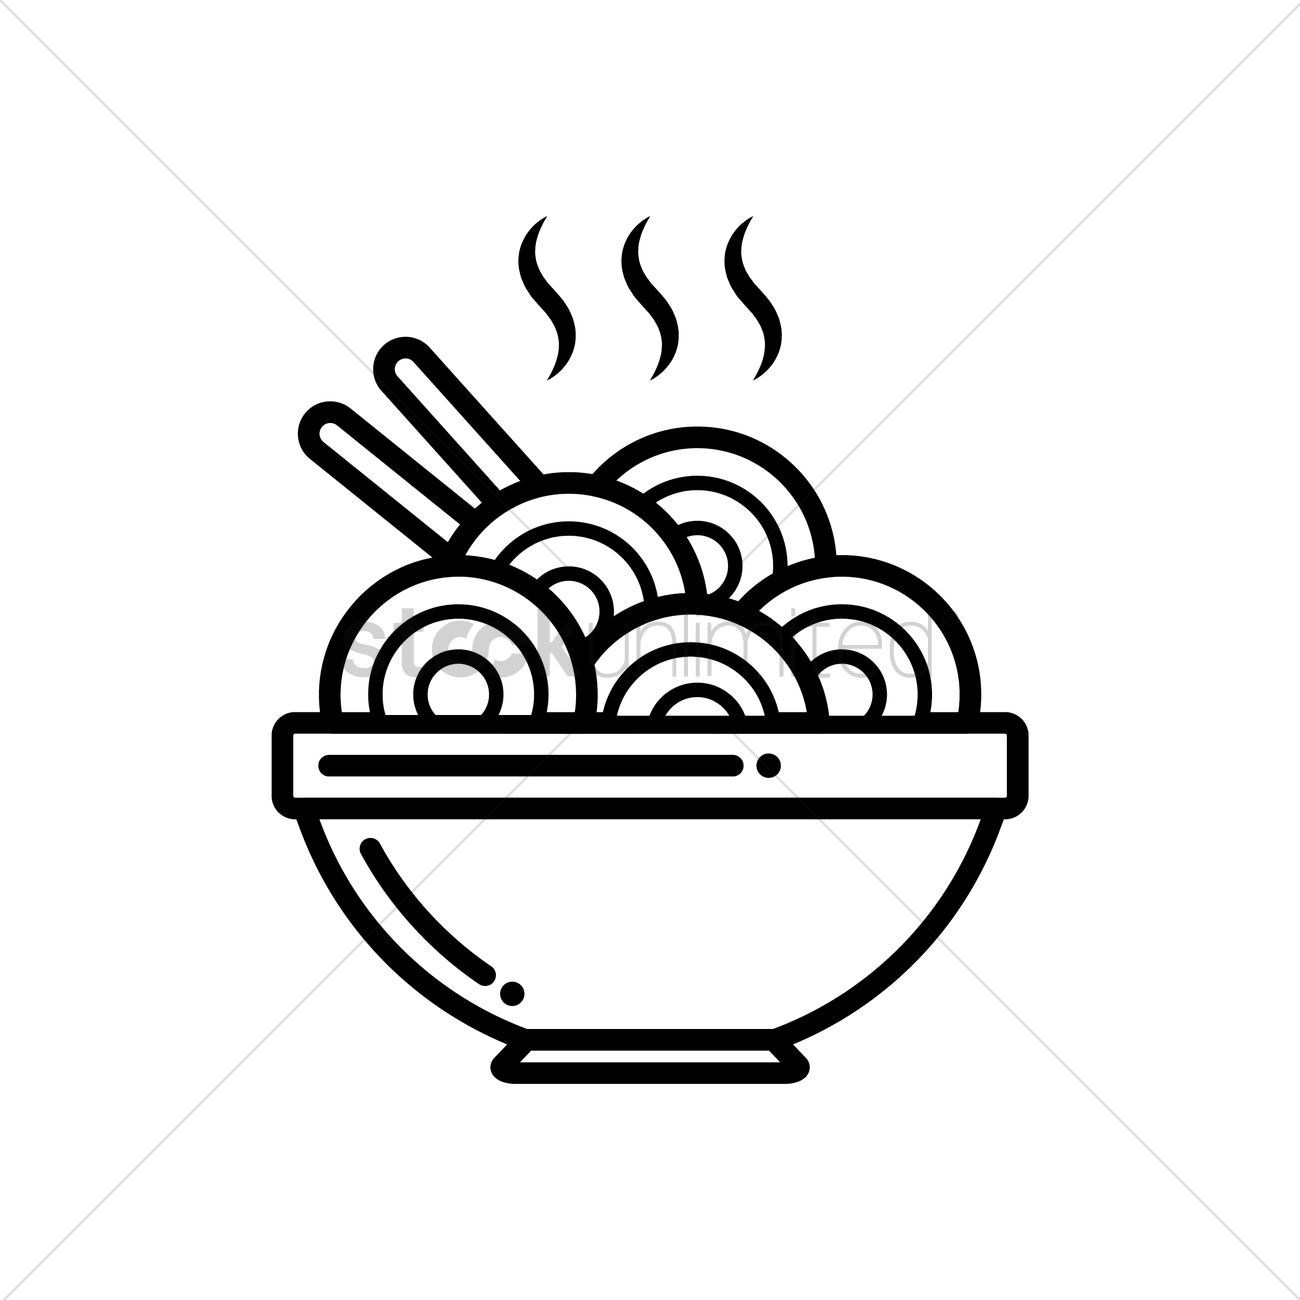 Hot soup clipart black and white 2 » Clipart Portal.